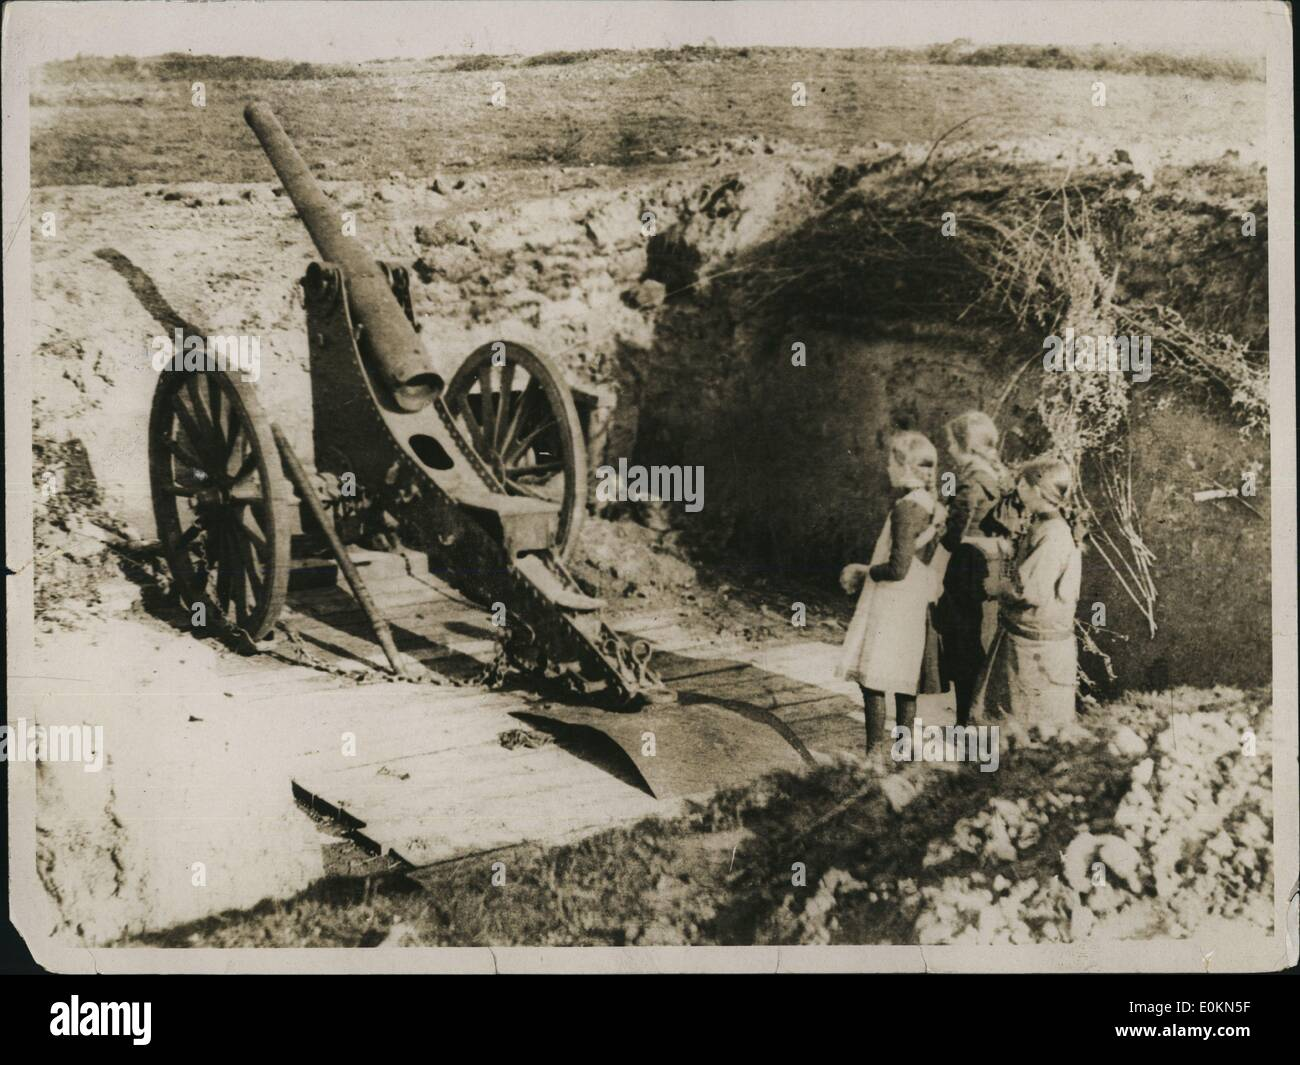 Jan. 1, 1915 - An Object of Great Interest. Three little girls in the War area enter a deserted gun position and stand gading with wonder at the implement that has brought so much trouble into the fields they know so well. - Stock Image